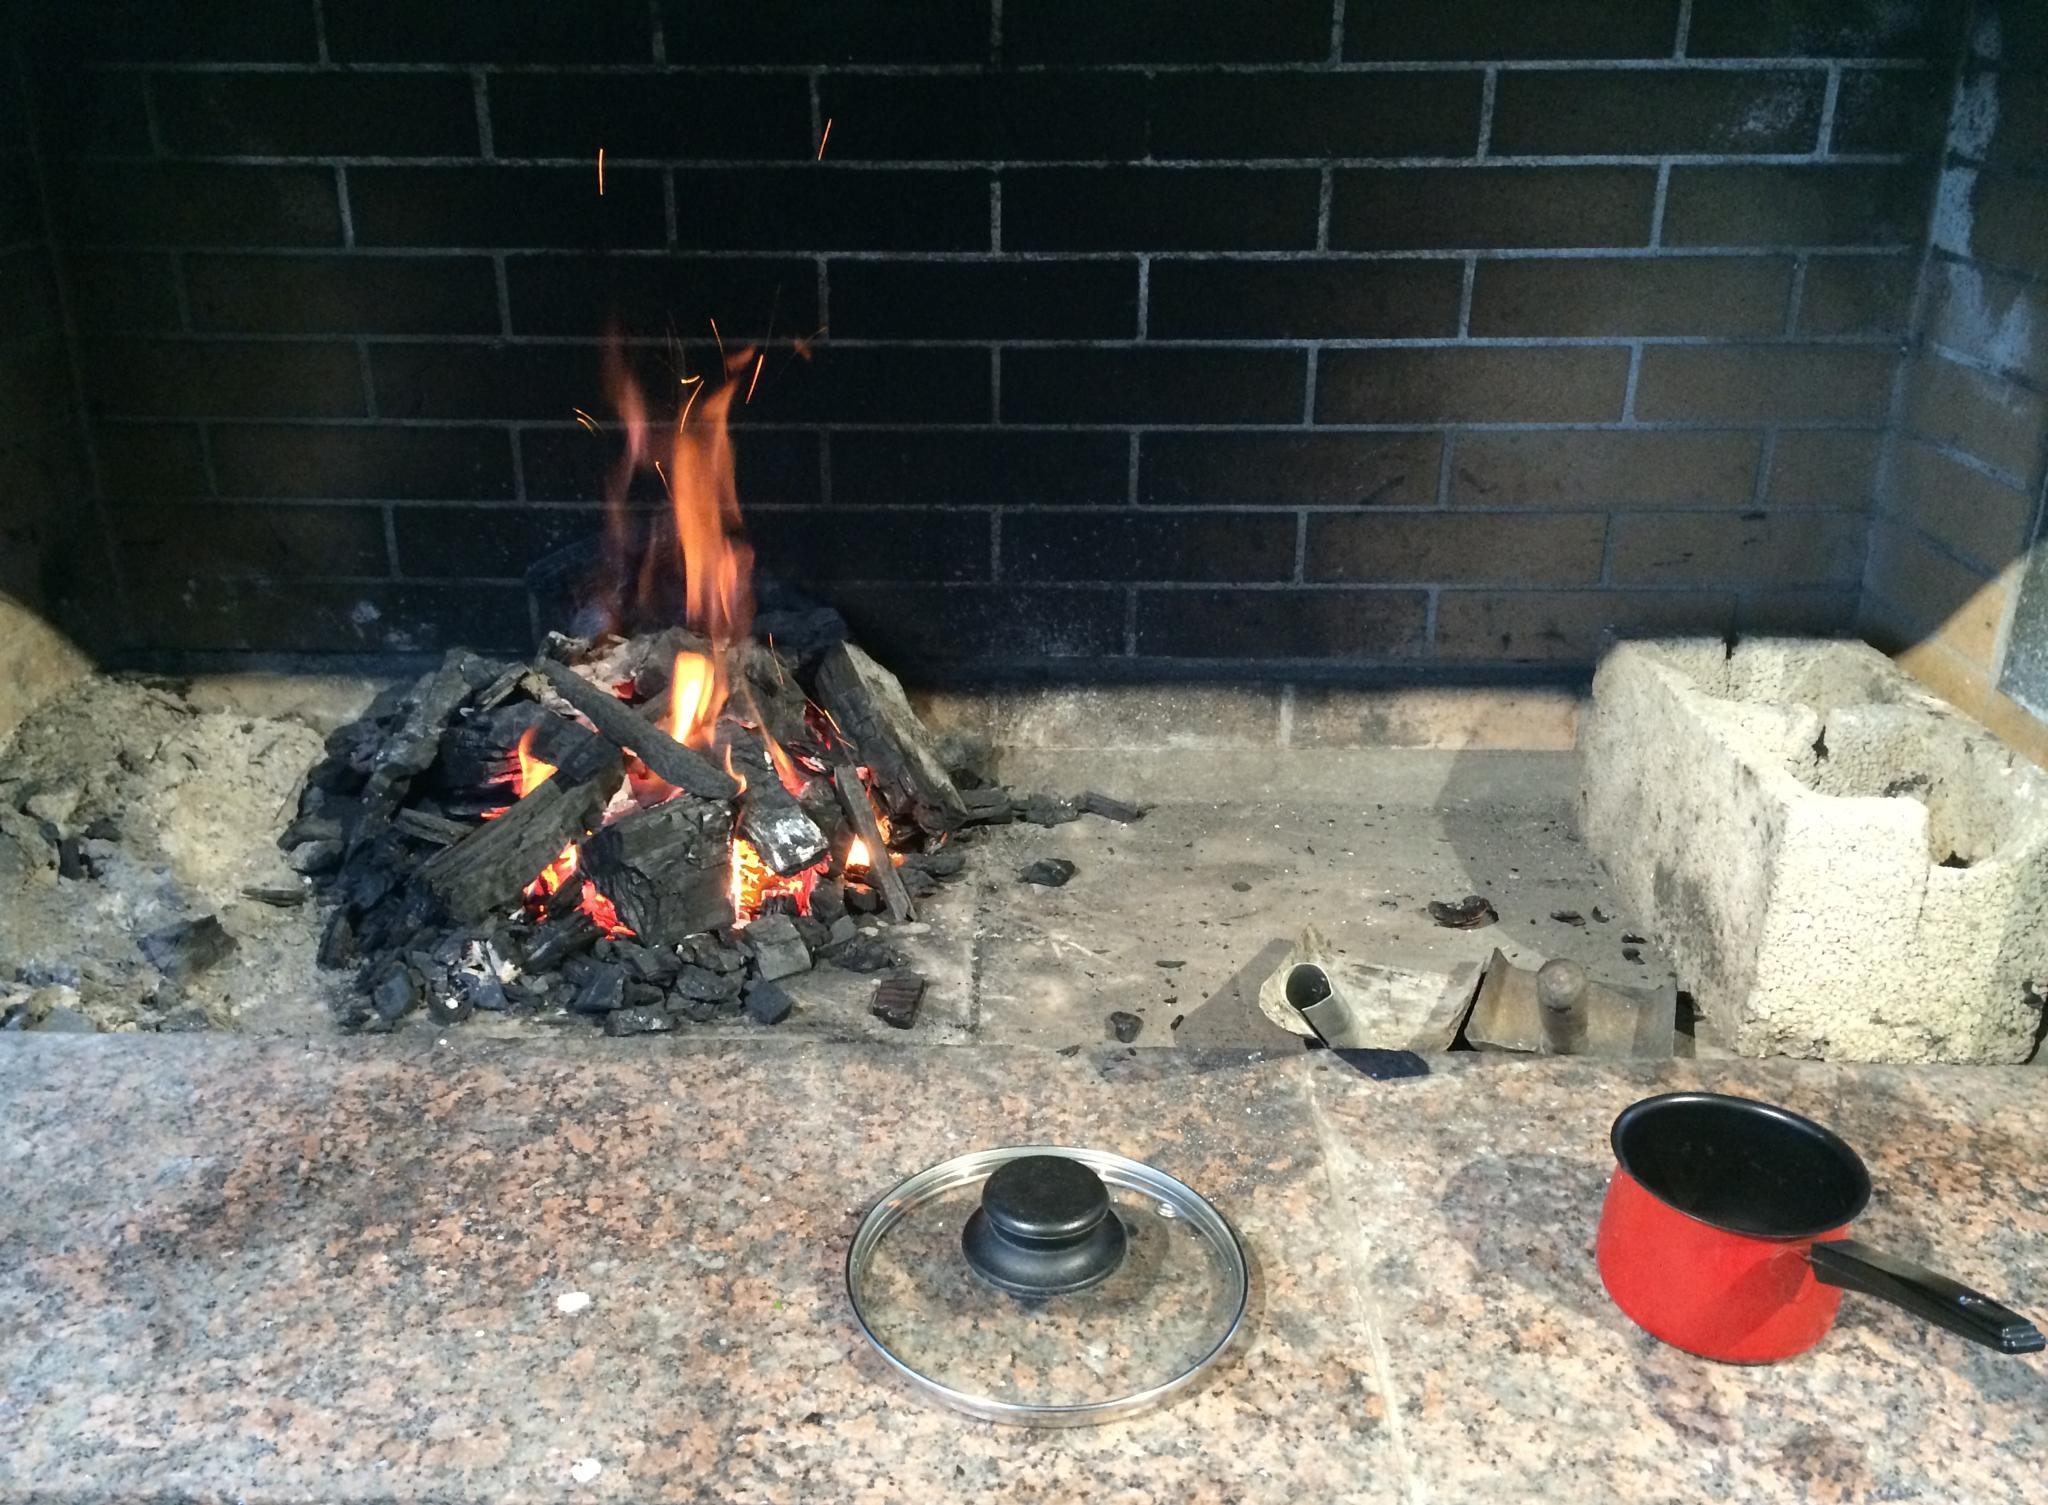 Fireplace before cooking by m.etemadieh